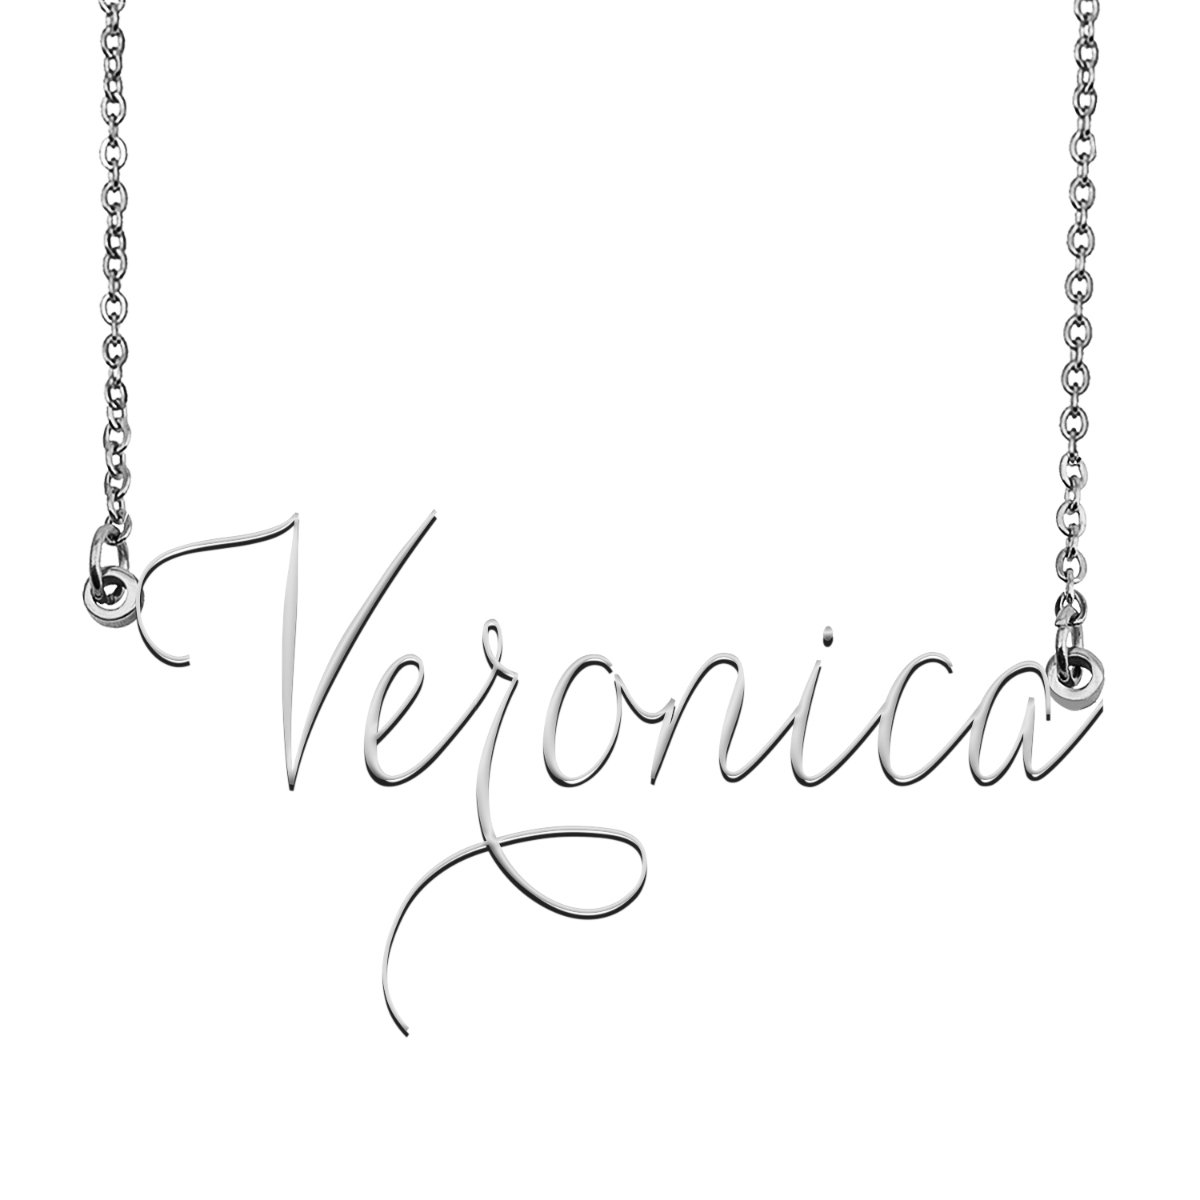 Veronica Name Necklace Custom Personalized Name Plate Jewelry for Birthday Christmas Gift